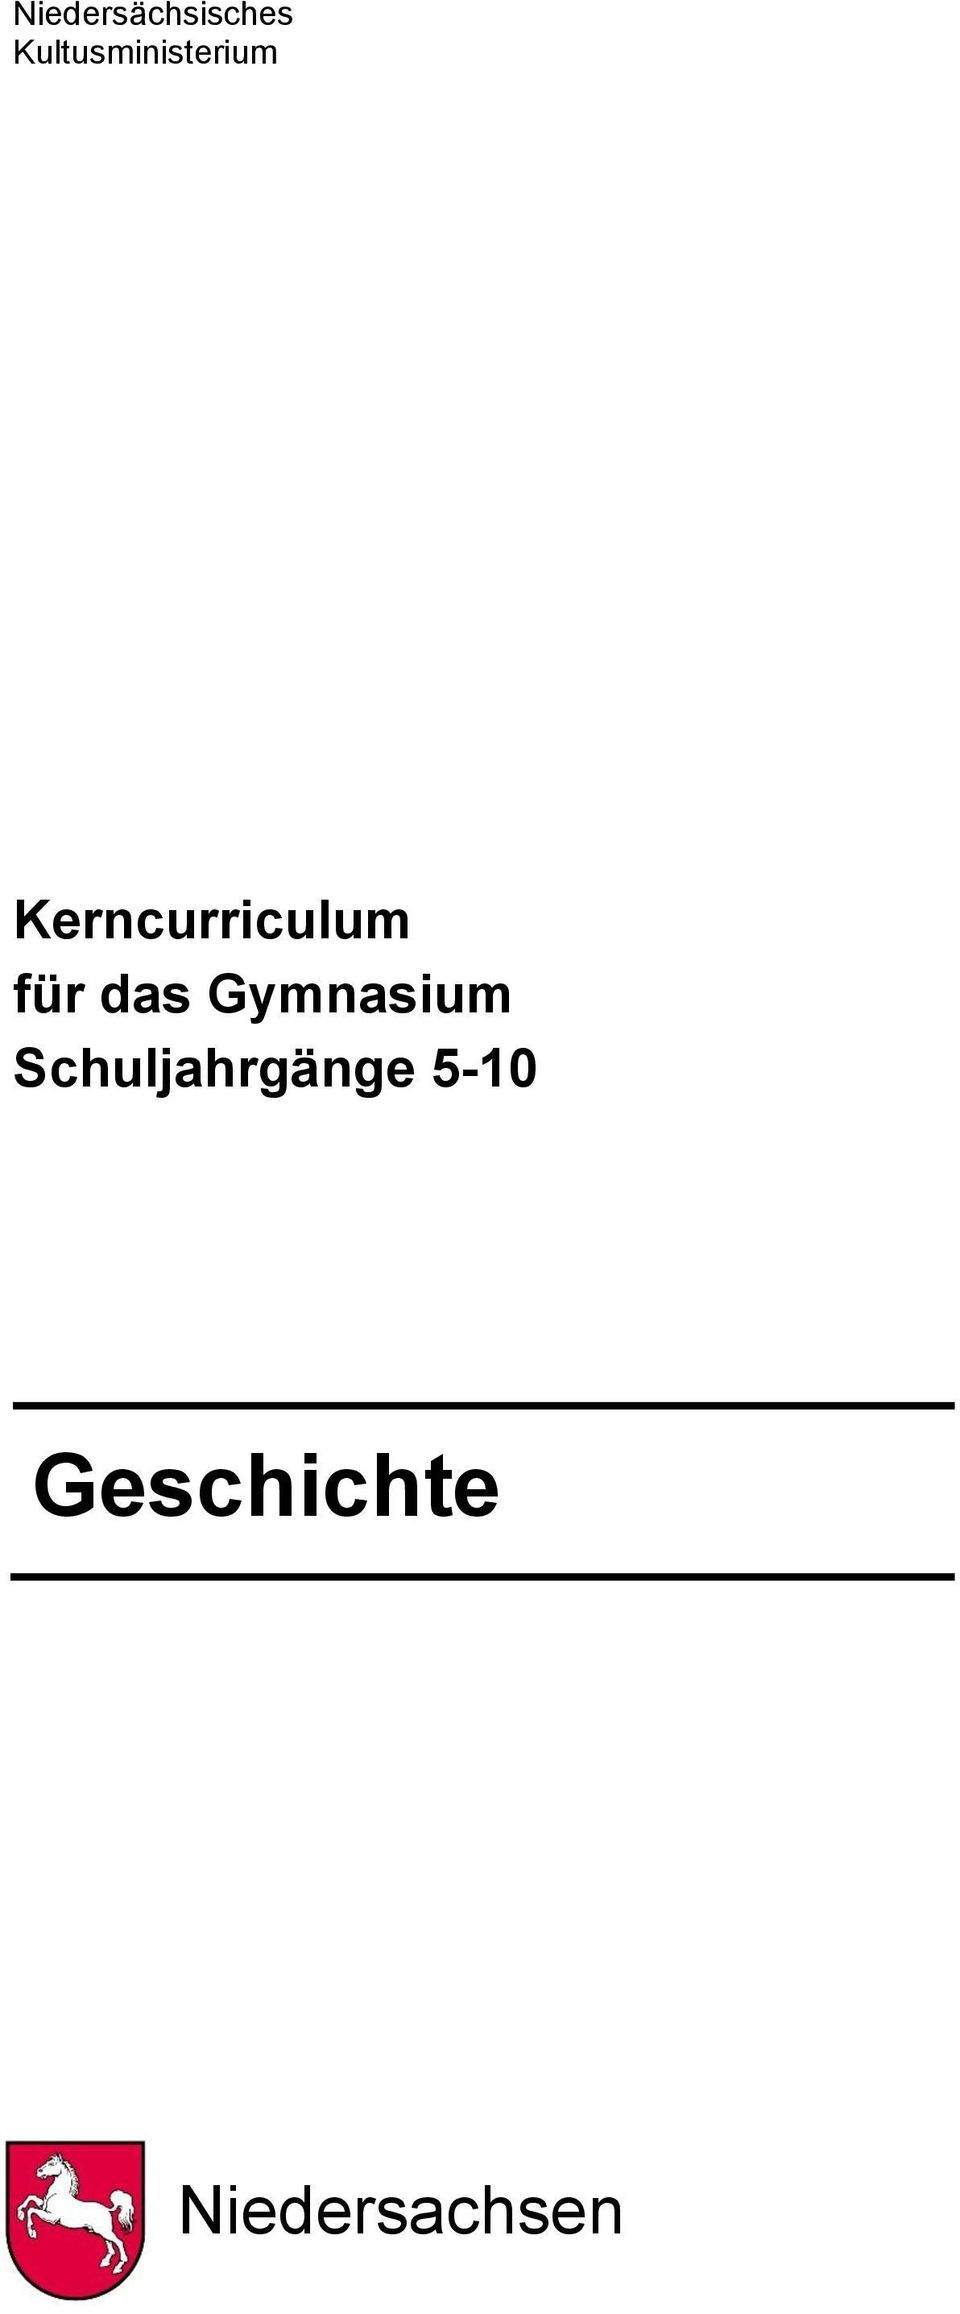 kerncurriculum f r das gymnasium schuljahrg nge 5 10 geschichte pdf. Black Bedroom Furniture Sets. Home Design Ideas